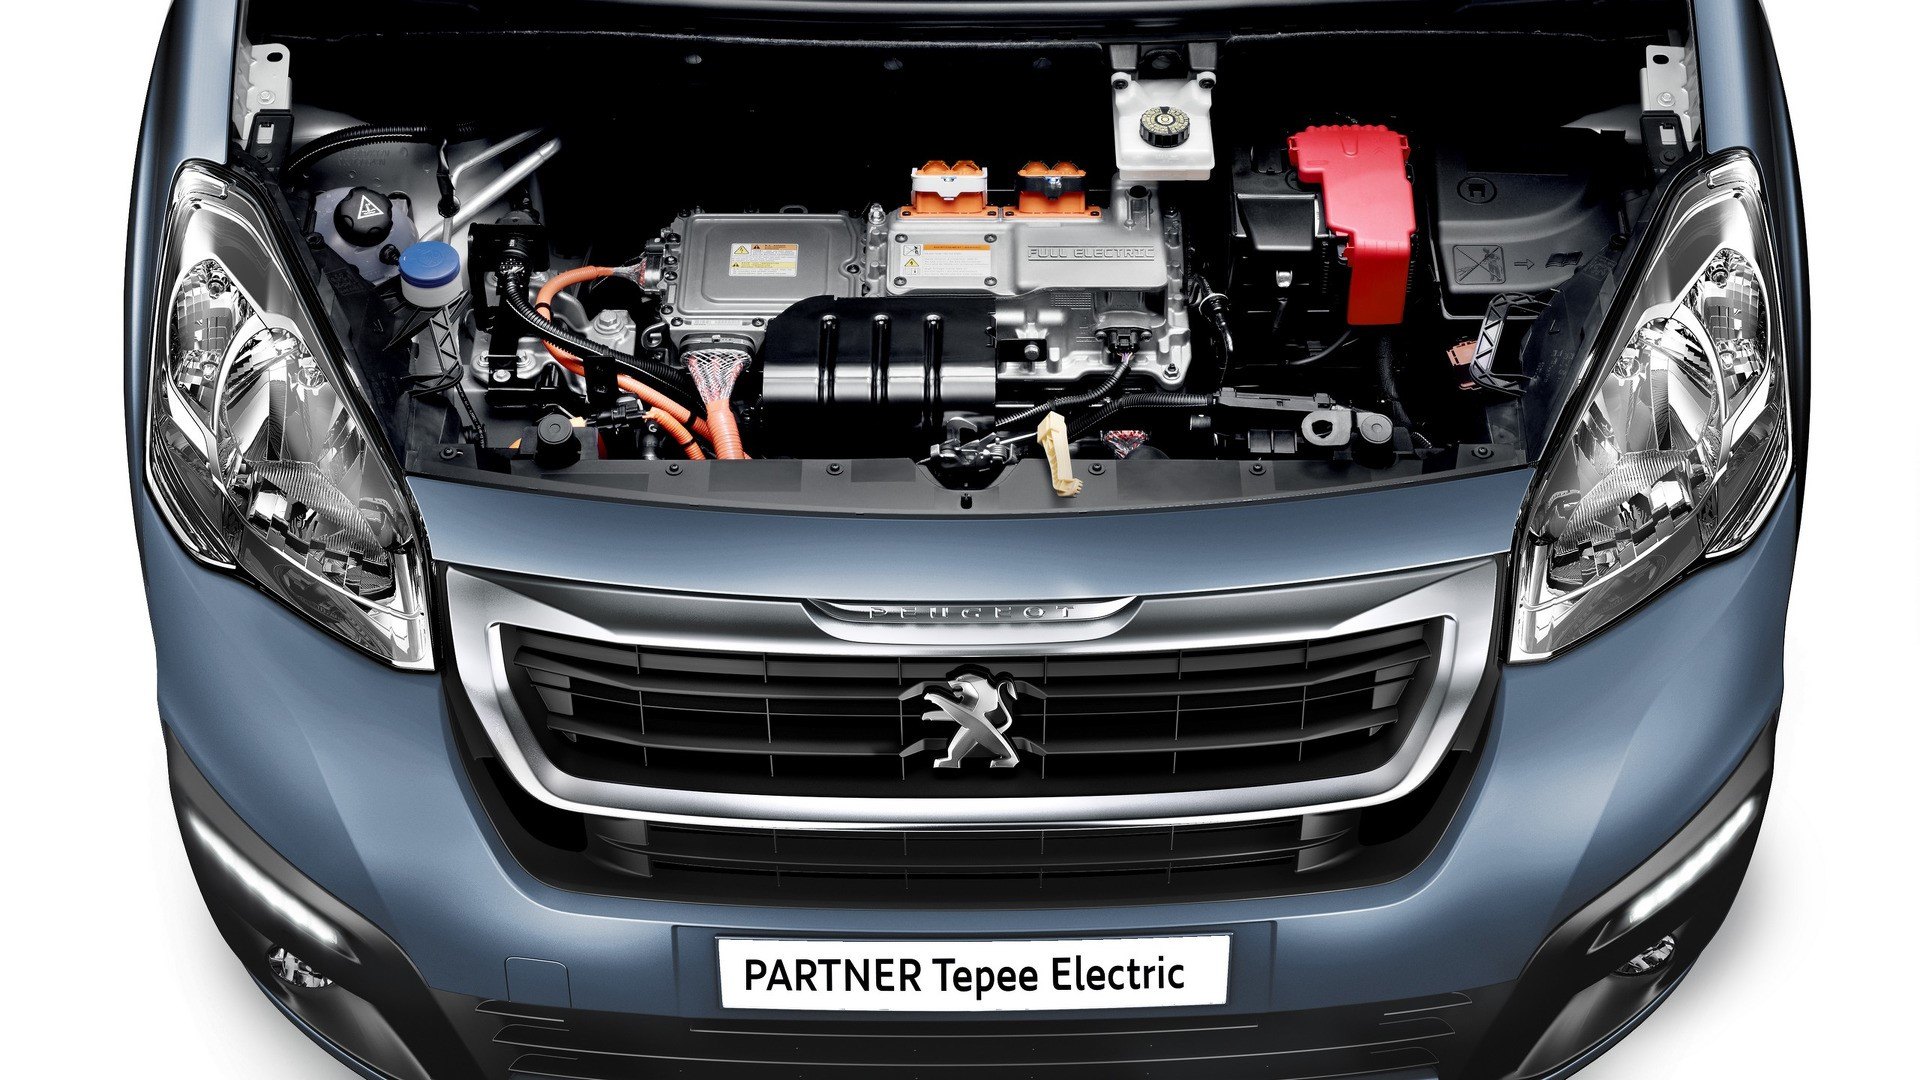 Peugeot Partner Tepee Electric (8)